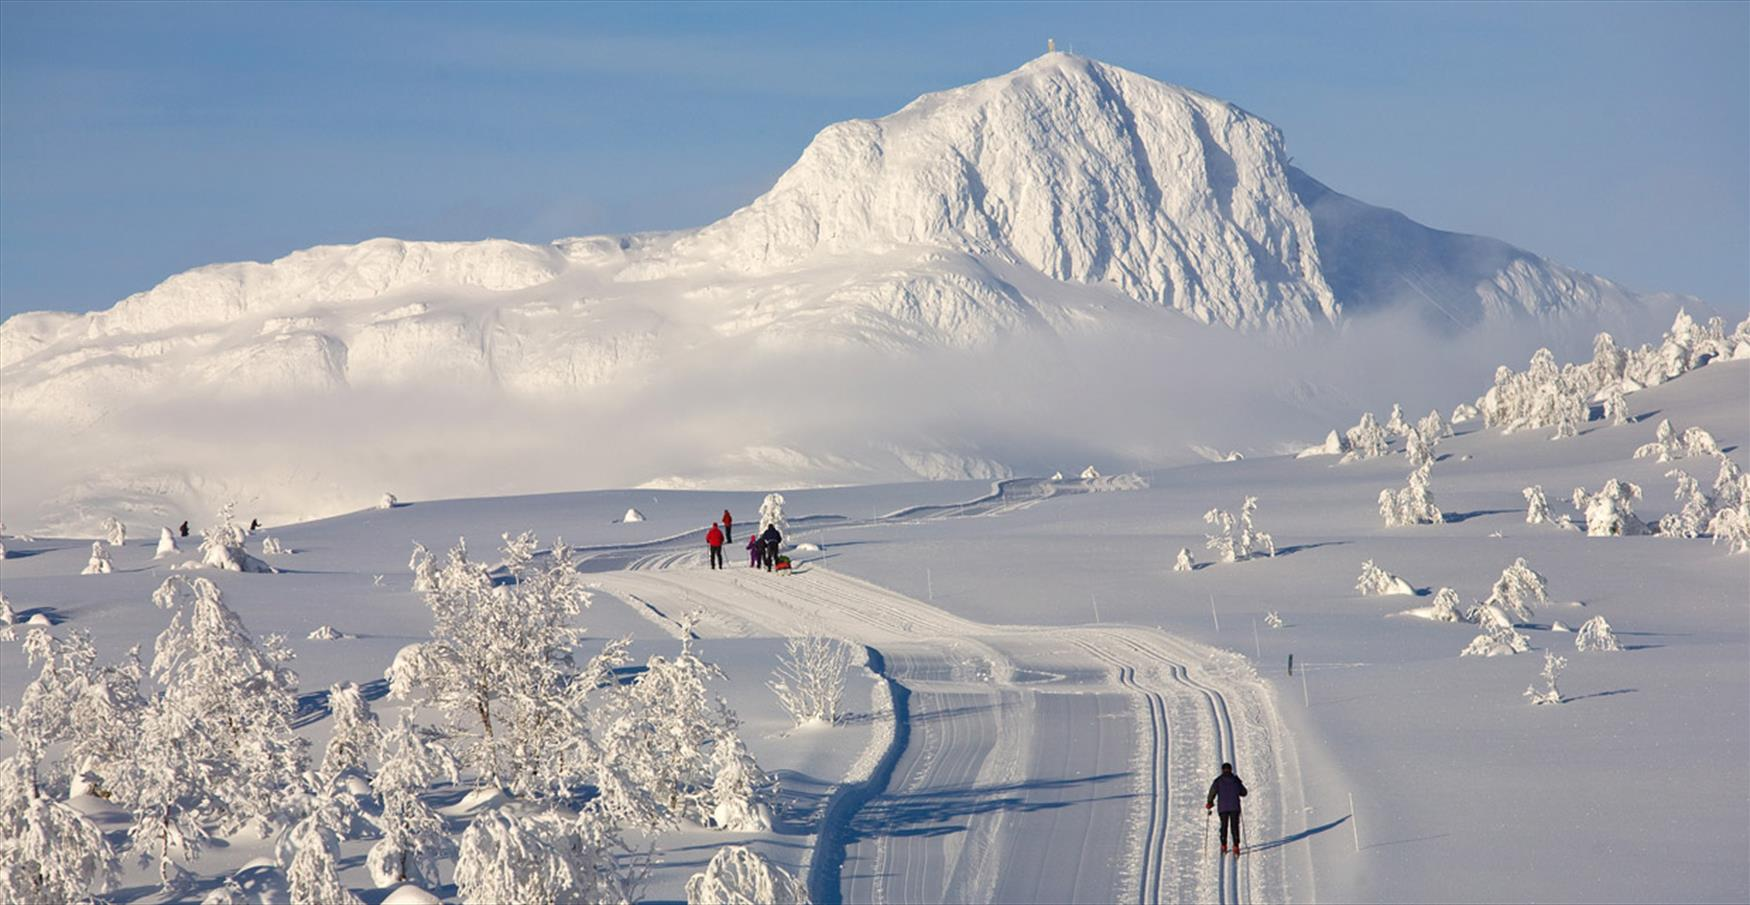 Cross-country skiing in Beitostølen with the mountain Bitihorn as a backdrop.